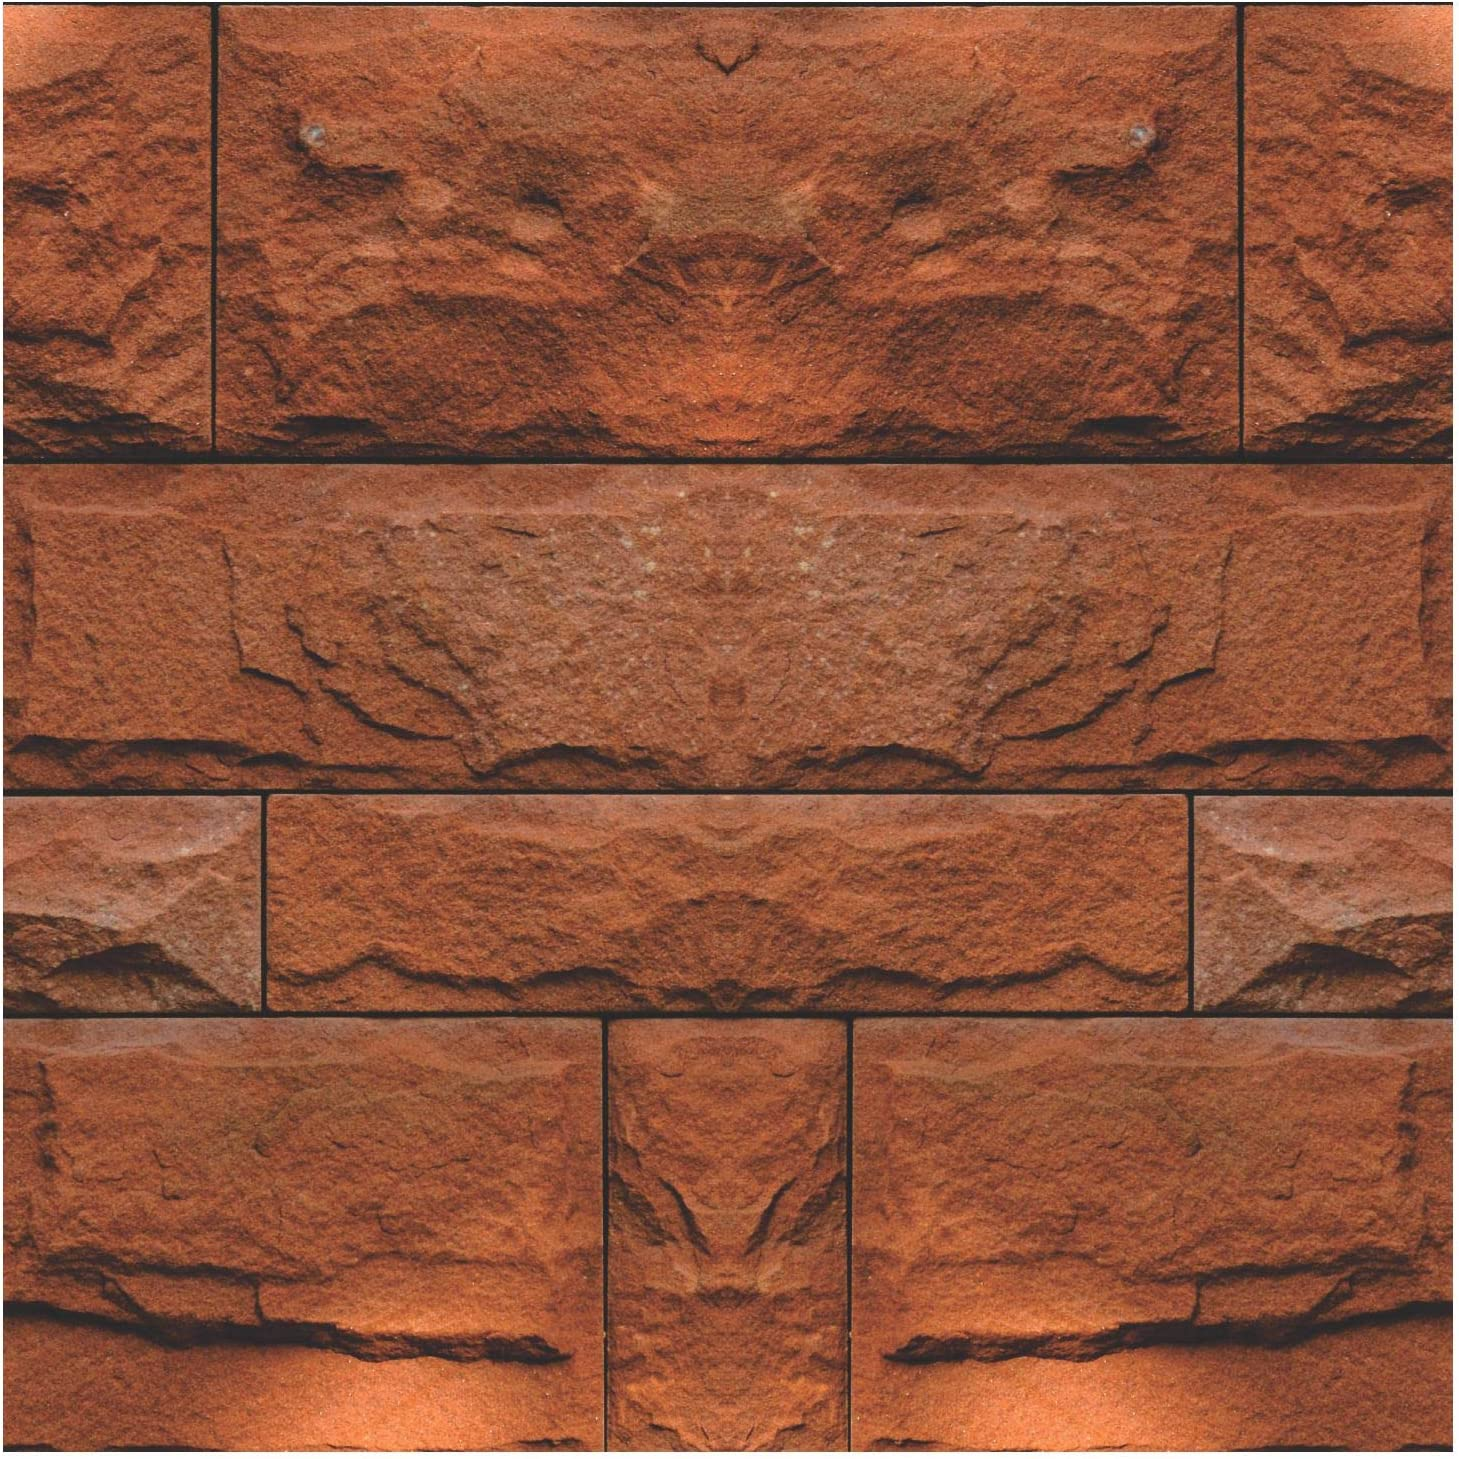 Red Stone Decorative Stickers - (Pack of 24) 6x6 Inch Backsplash Peel and Stick Vinyl Tile Decals for Kitchen Wall Stairs Furniture Staircase DIY Home Decor